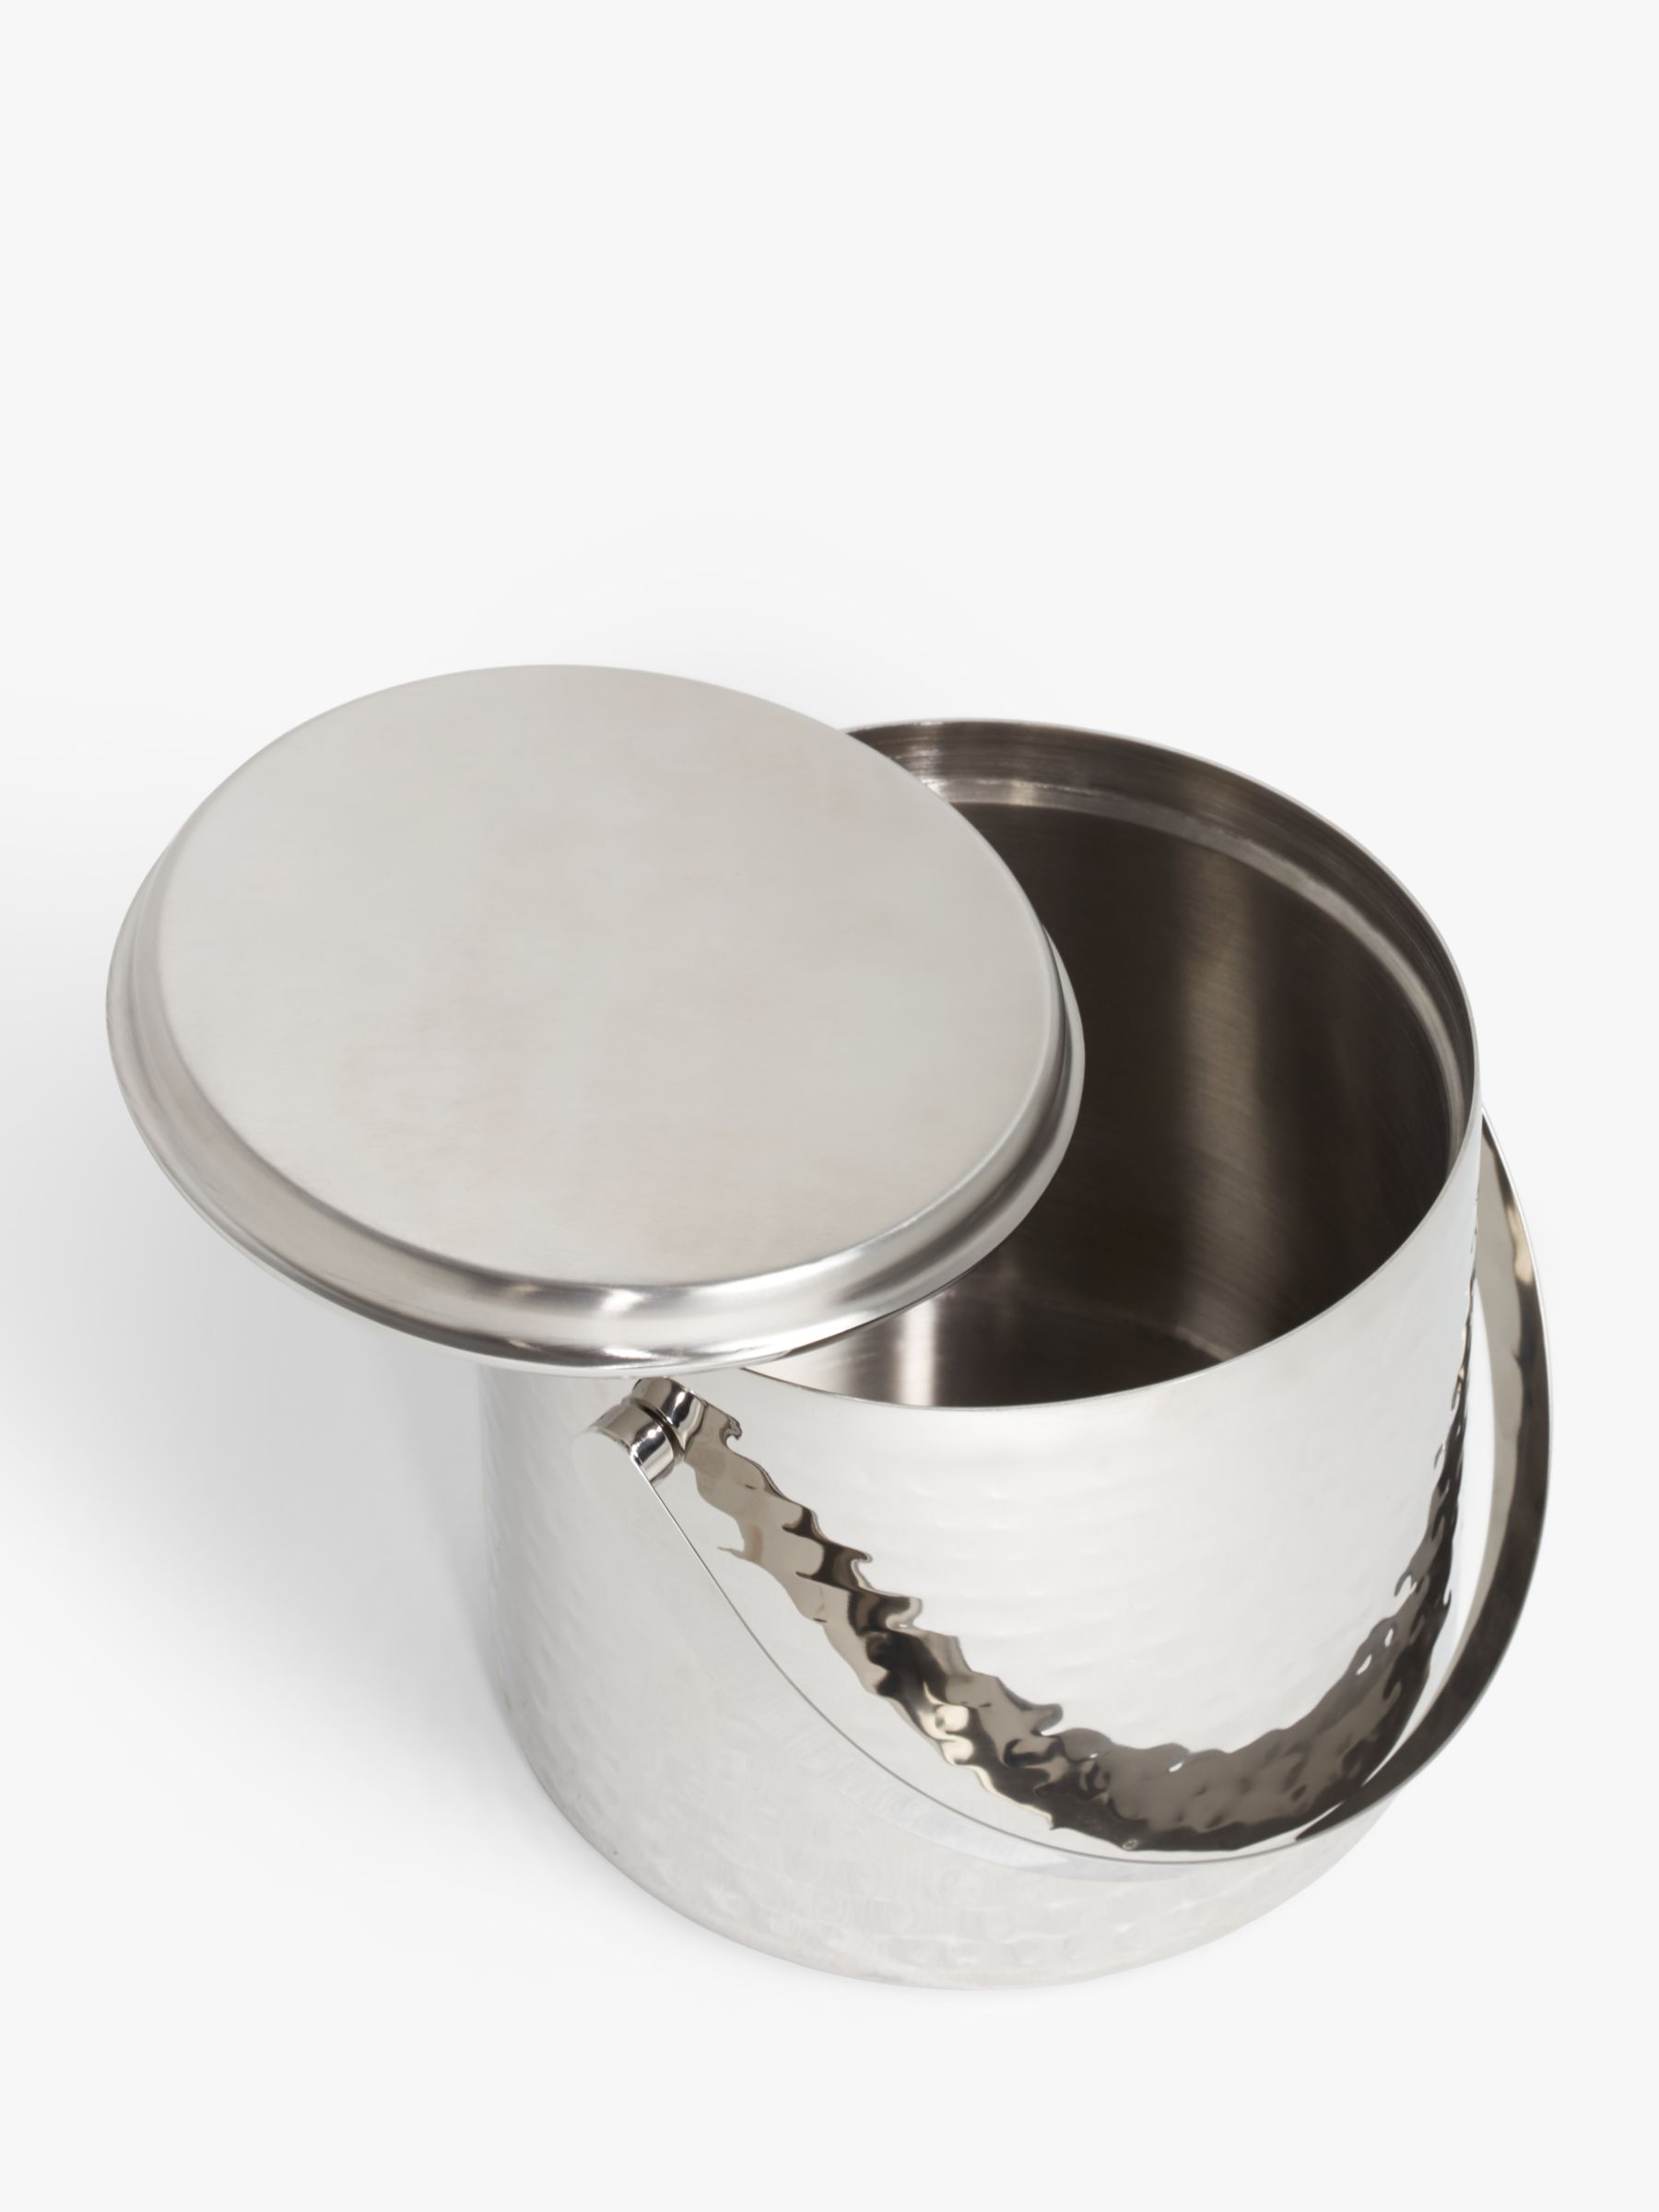 John Lewis Partners Hammered Stainless Steel Ice Bucket Lid Silver At John Lewis Partners